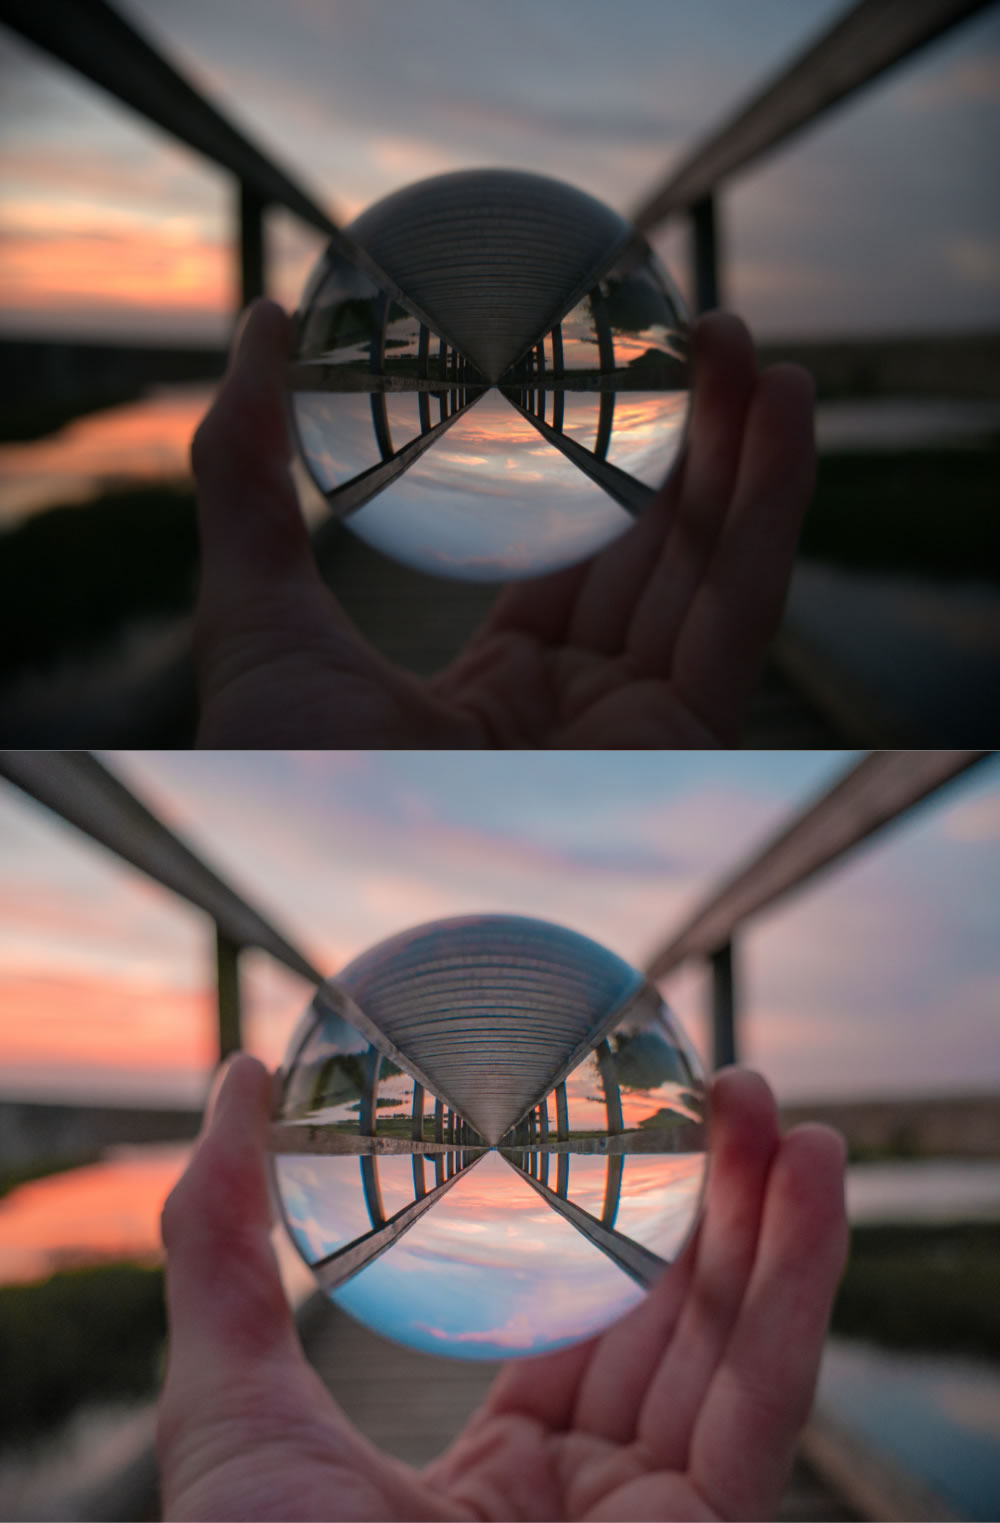 JPEG (Top) / RAW (Bottom) - Comparison